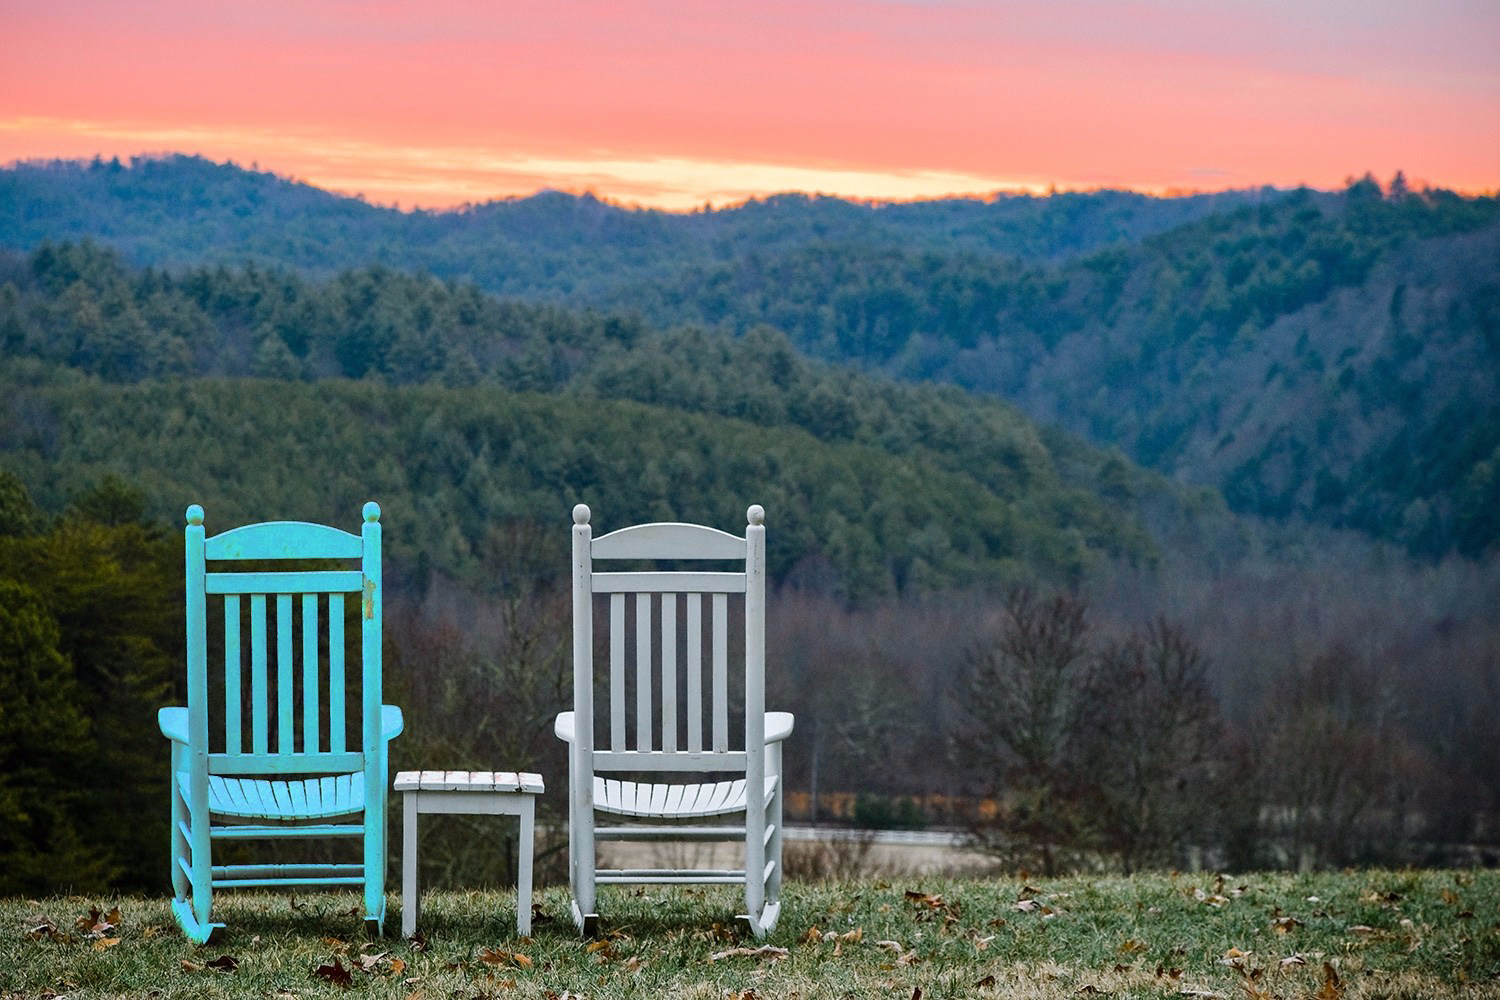 Chairs and Table Overlooking Great Smoky Mountain National Park at Sunset